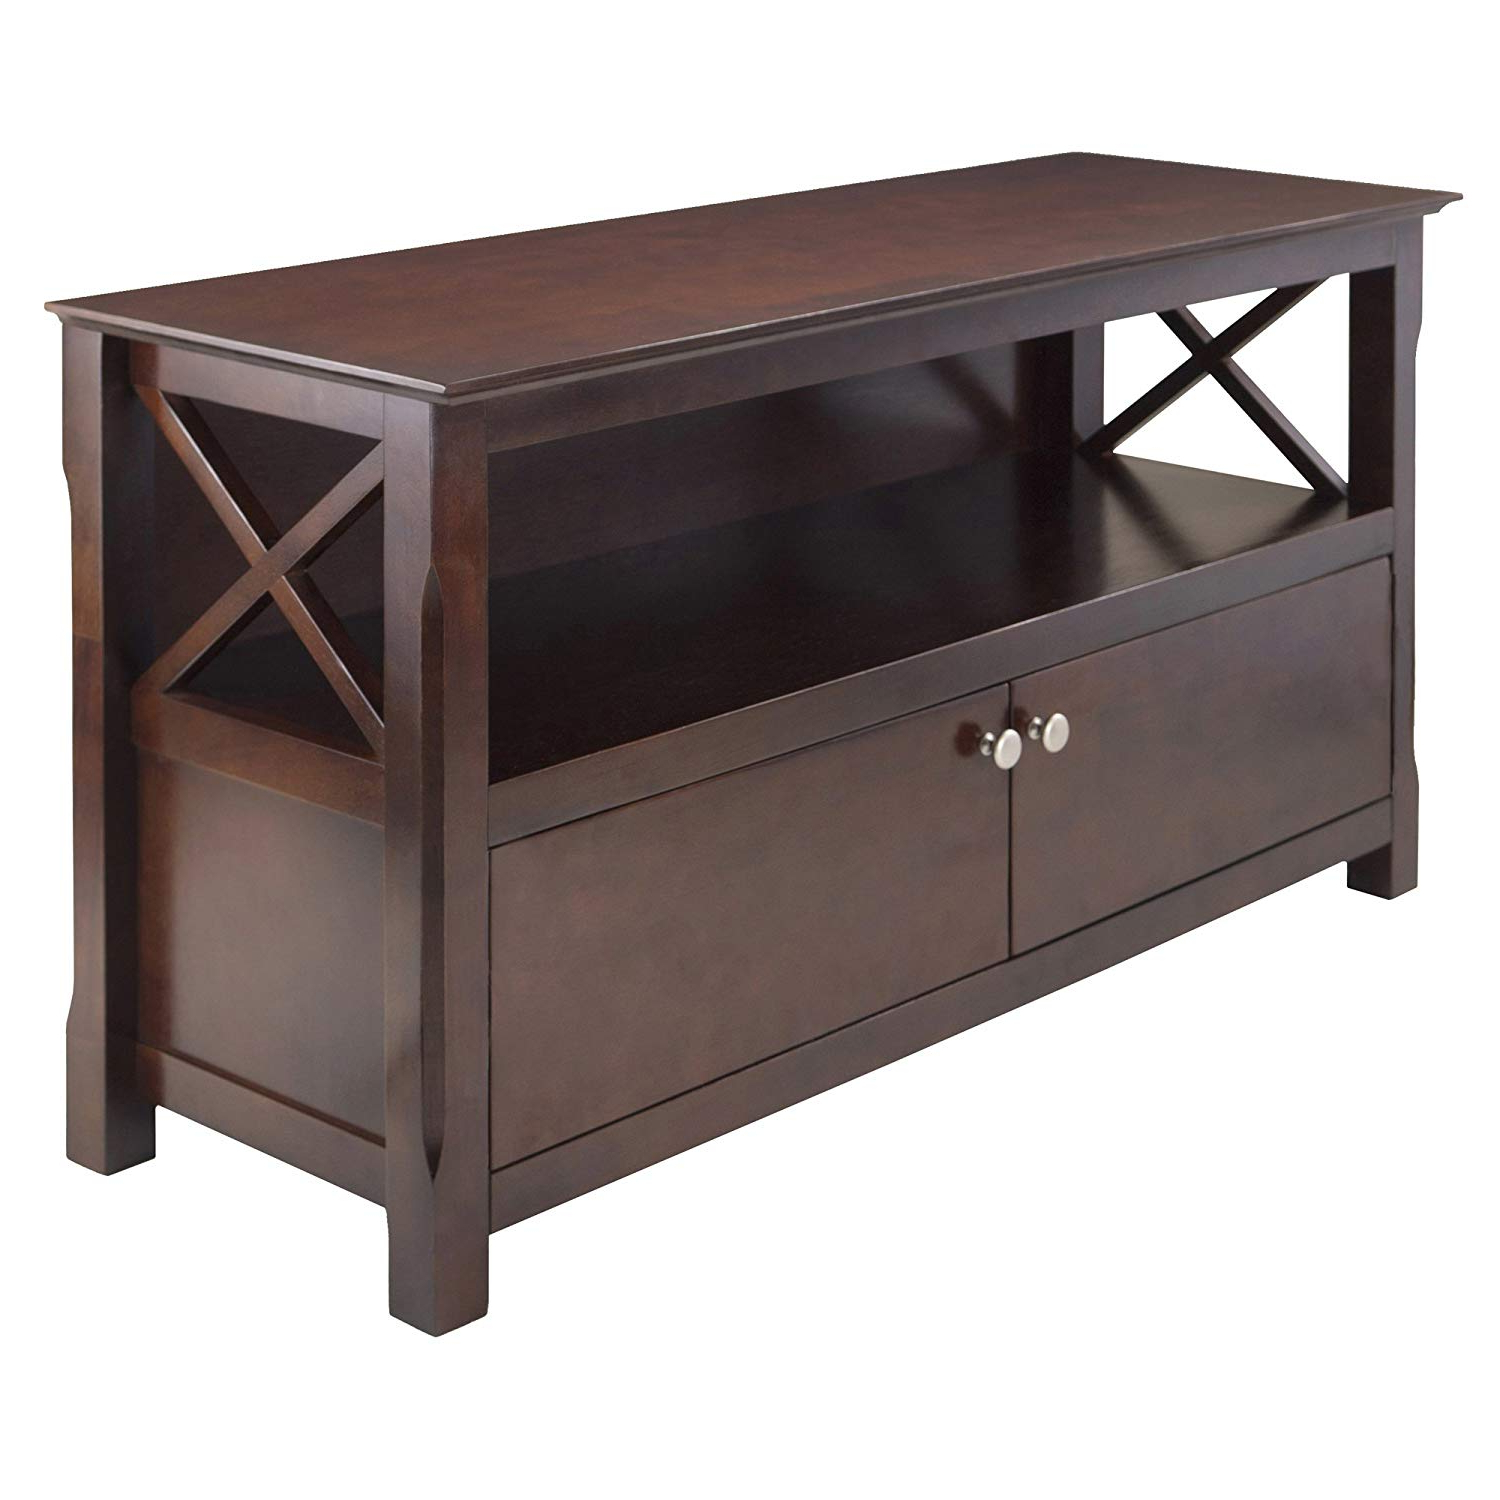 Most Recent Amazon: Winsome Wood Xola Tv Stand: Kitchen & Dining With Wooden Tv Stands (View 8 of 20)